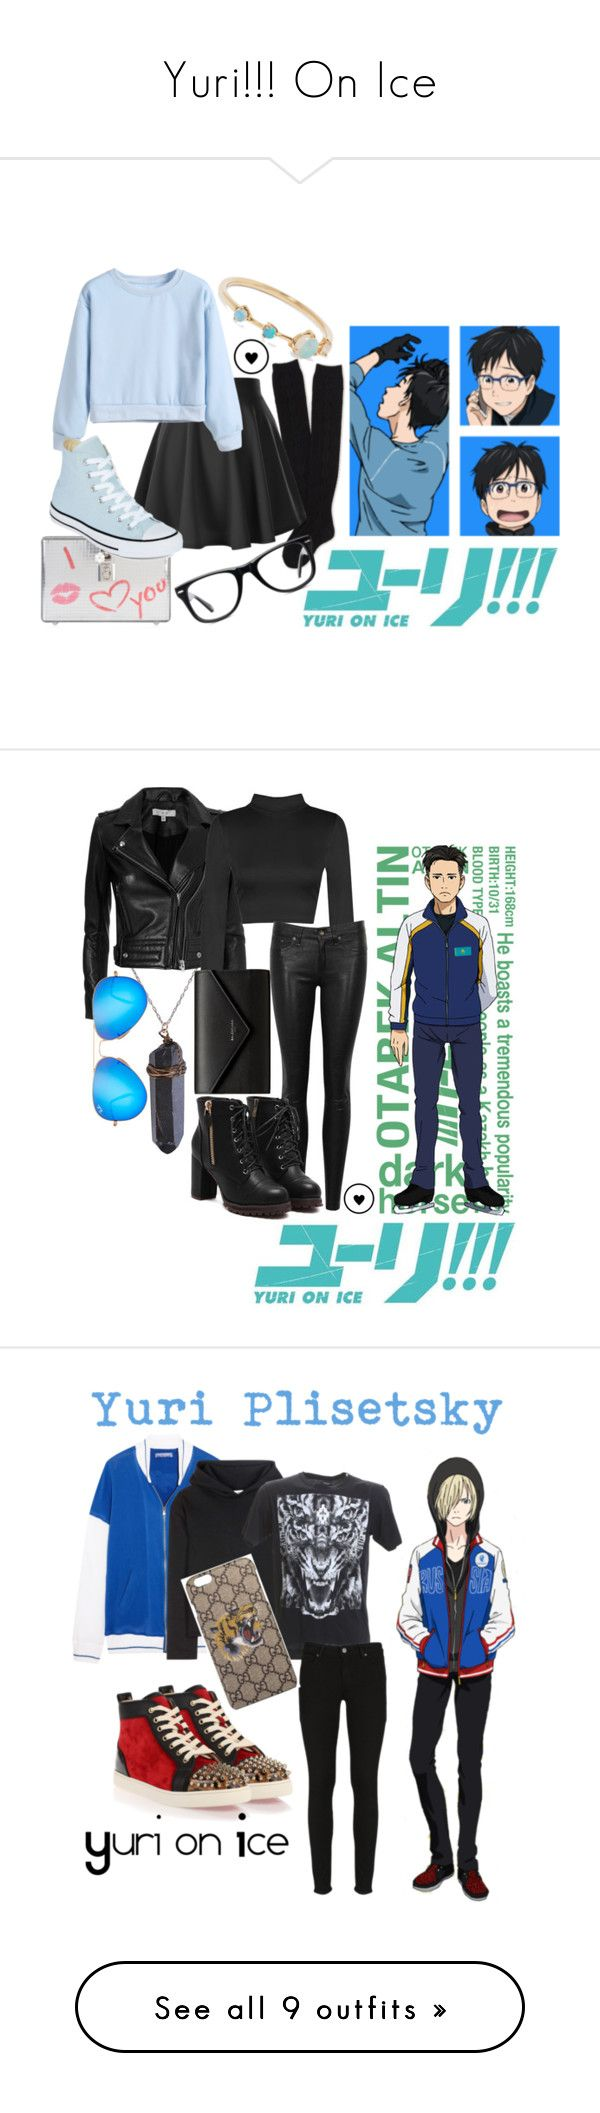 """Yuri!!! On Ice"" by hetaliua ❤ liked on Polyvore featuring WWAKE, Aéropostale, Dolce&Gabbana, Converse, Muse, IRO, rag & bone/JEAN, Balenciaga, Ray-Ban and Koza"